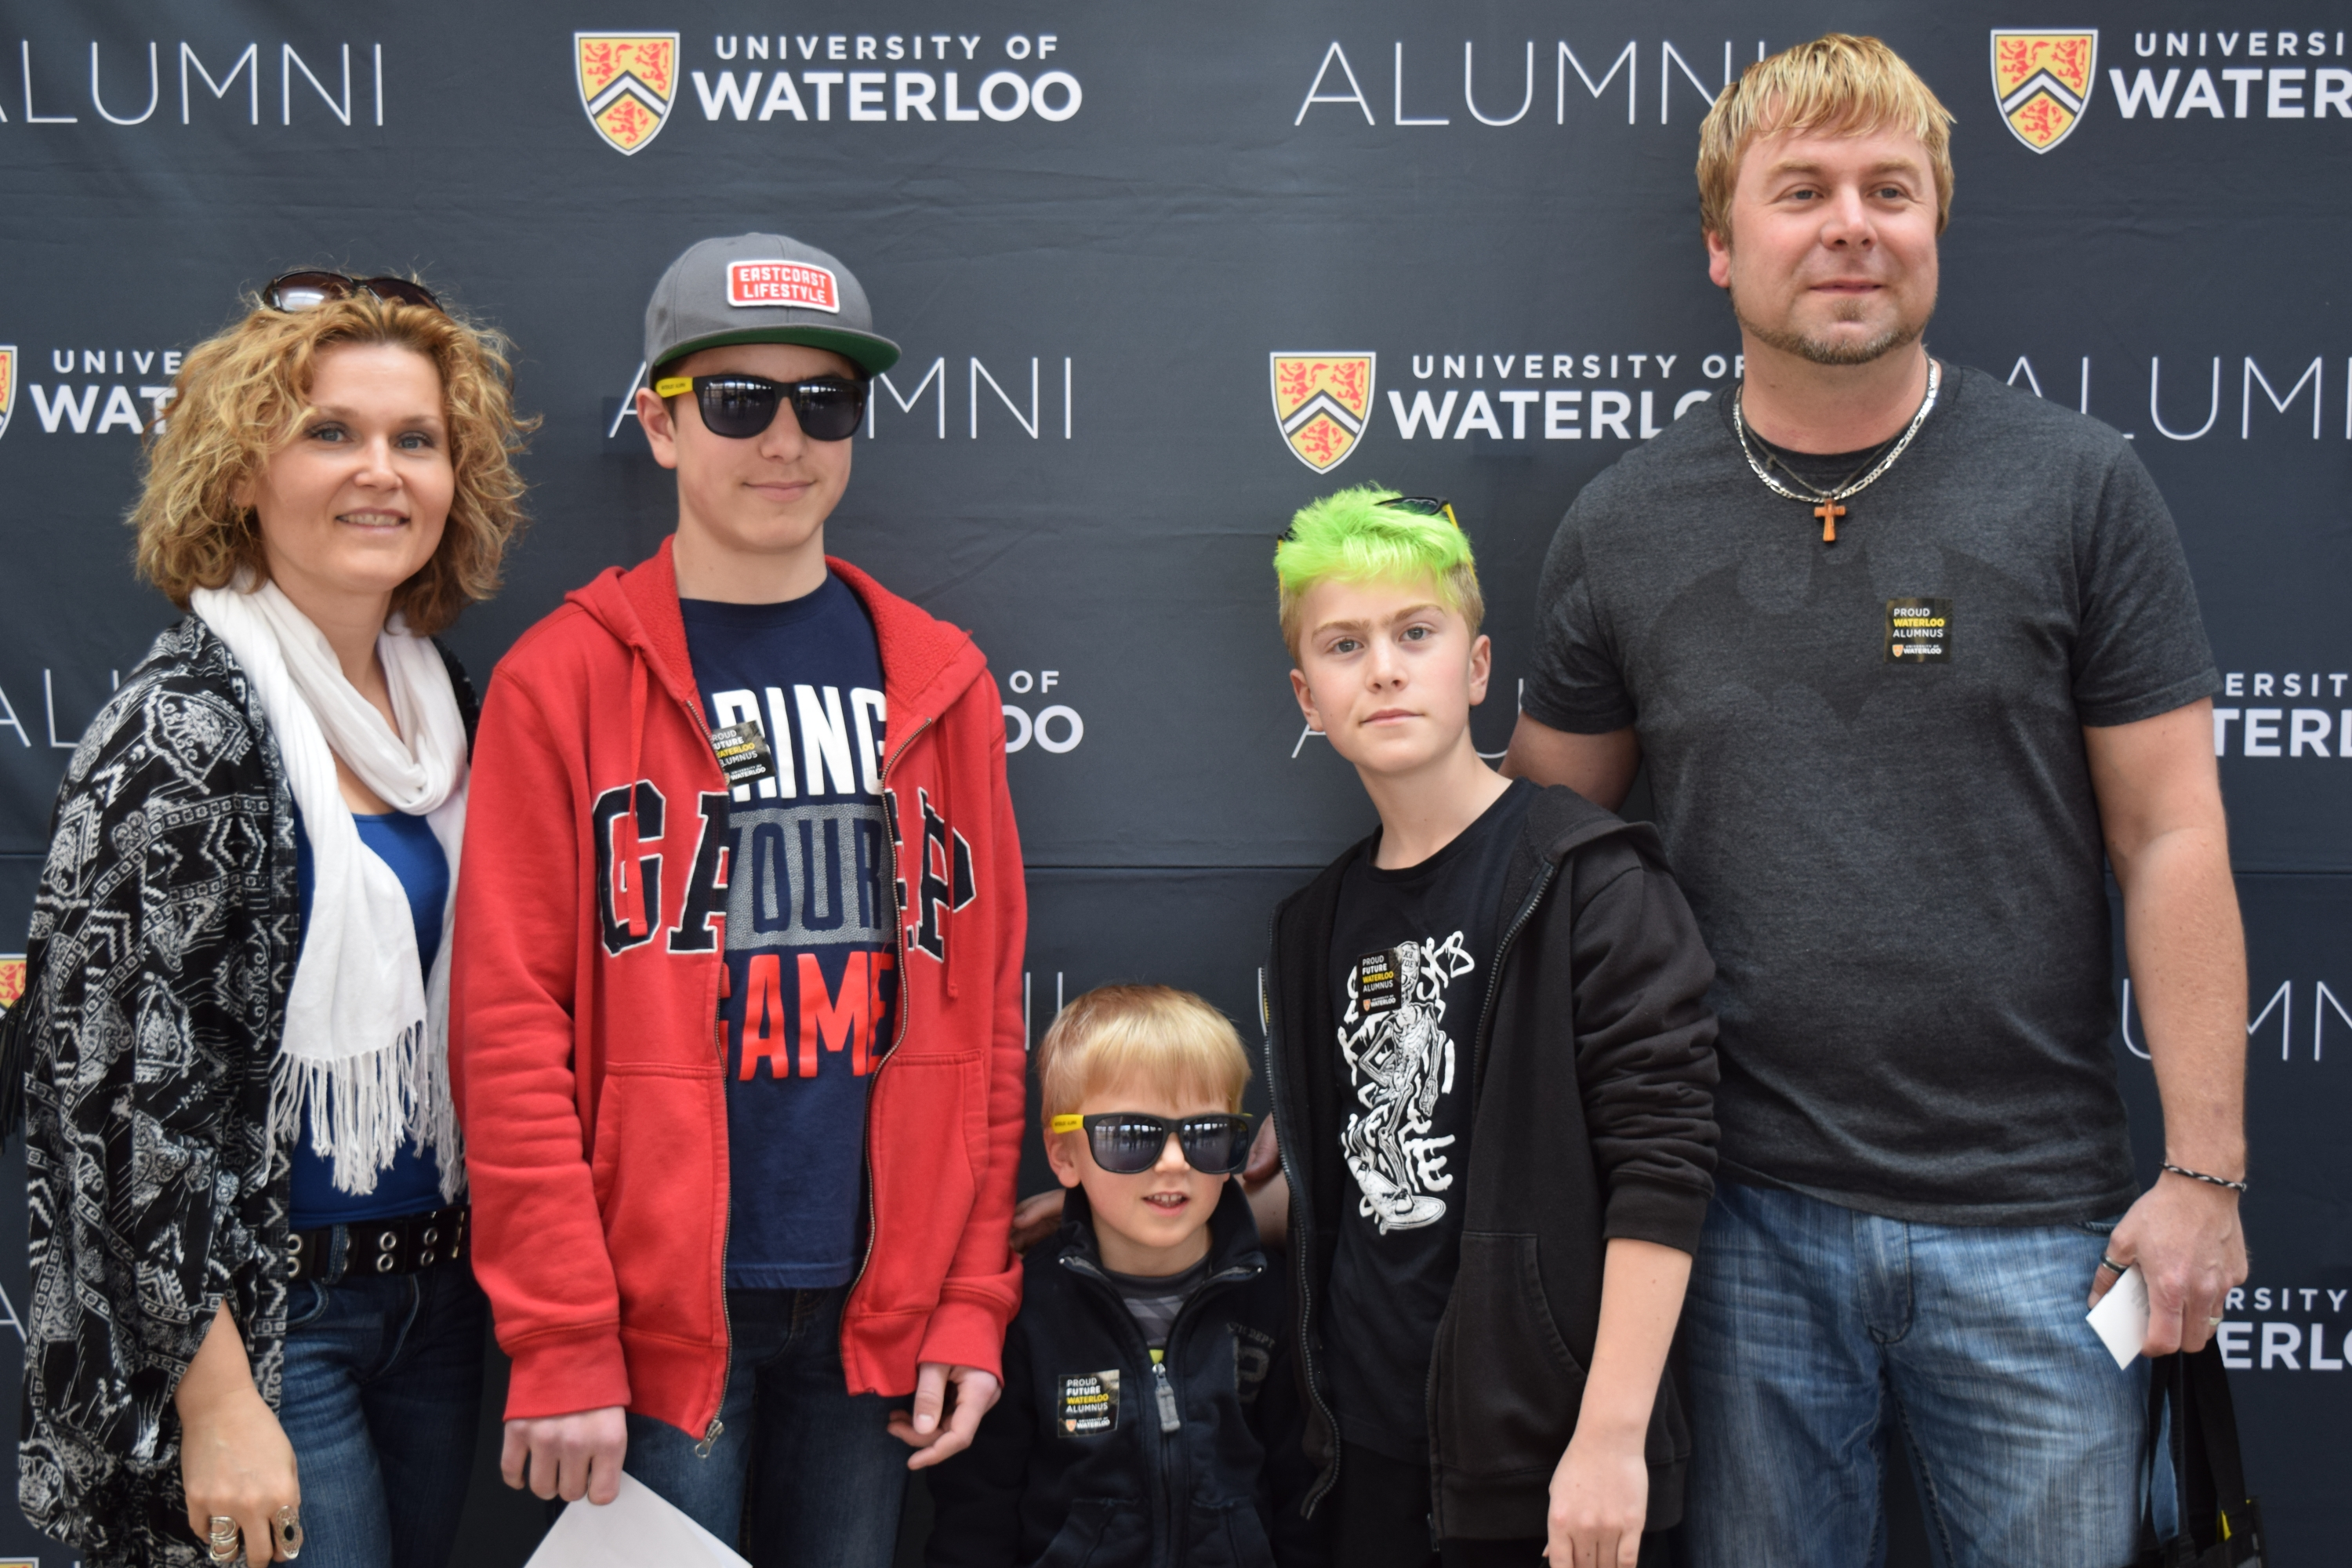 Jacob, Ben and their family at UWaterloo Family Day